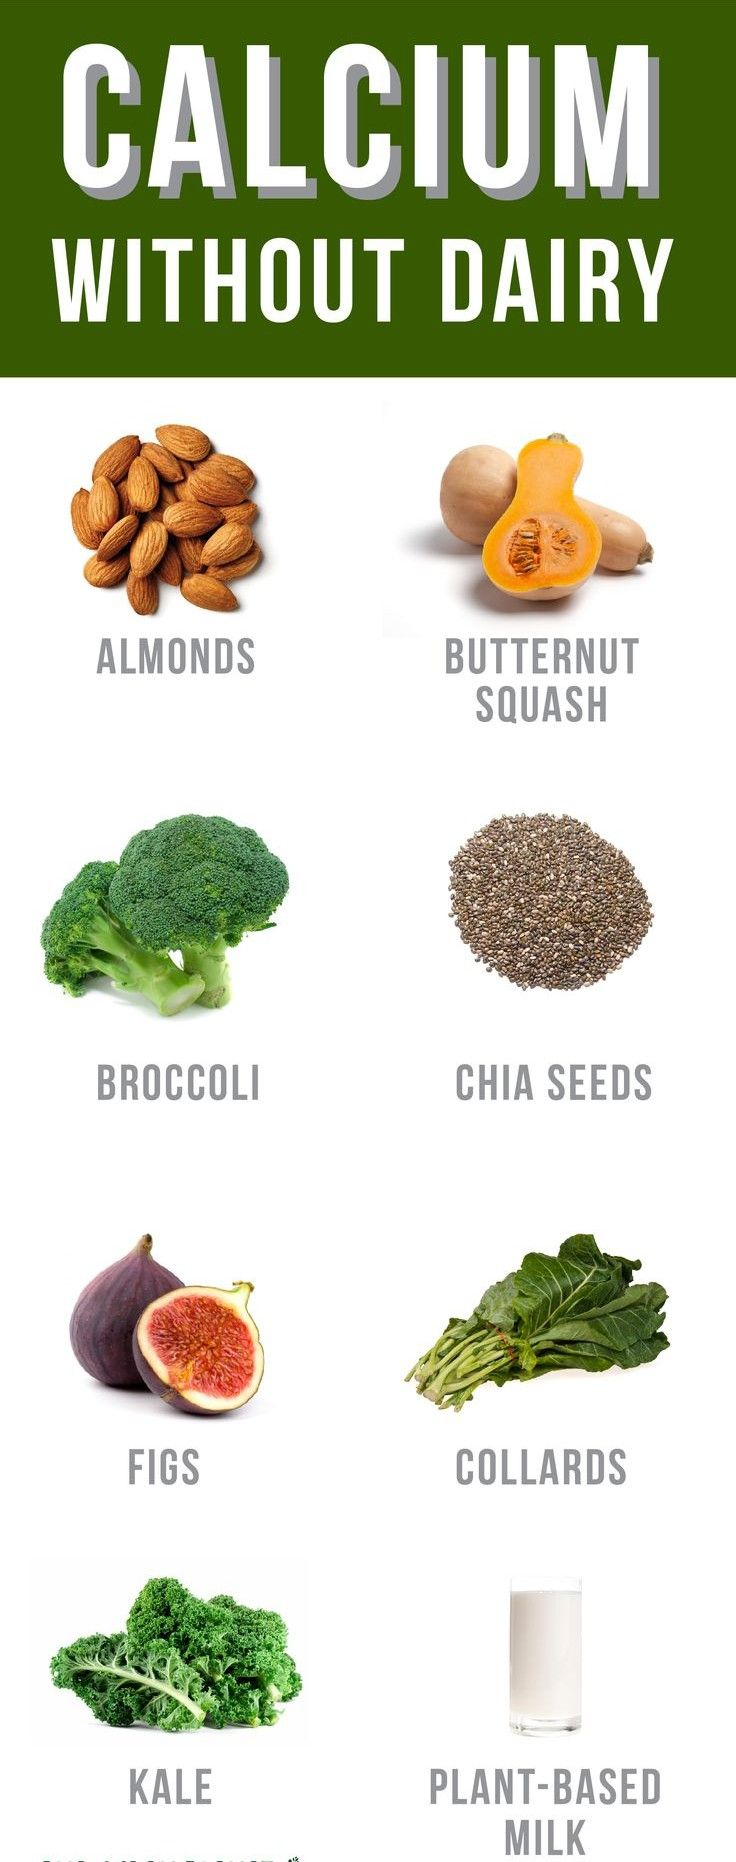 calcium rich foods - sources of calcium